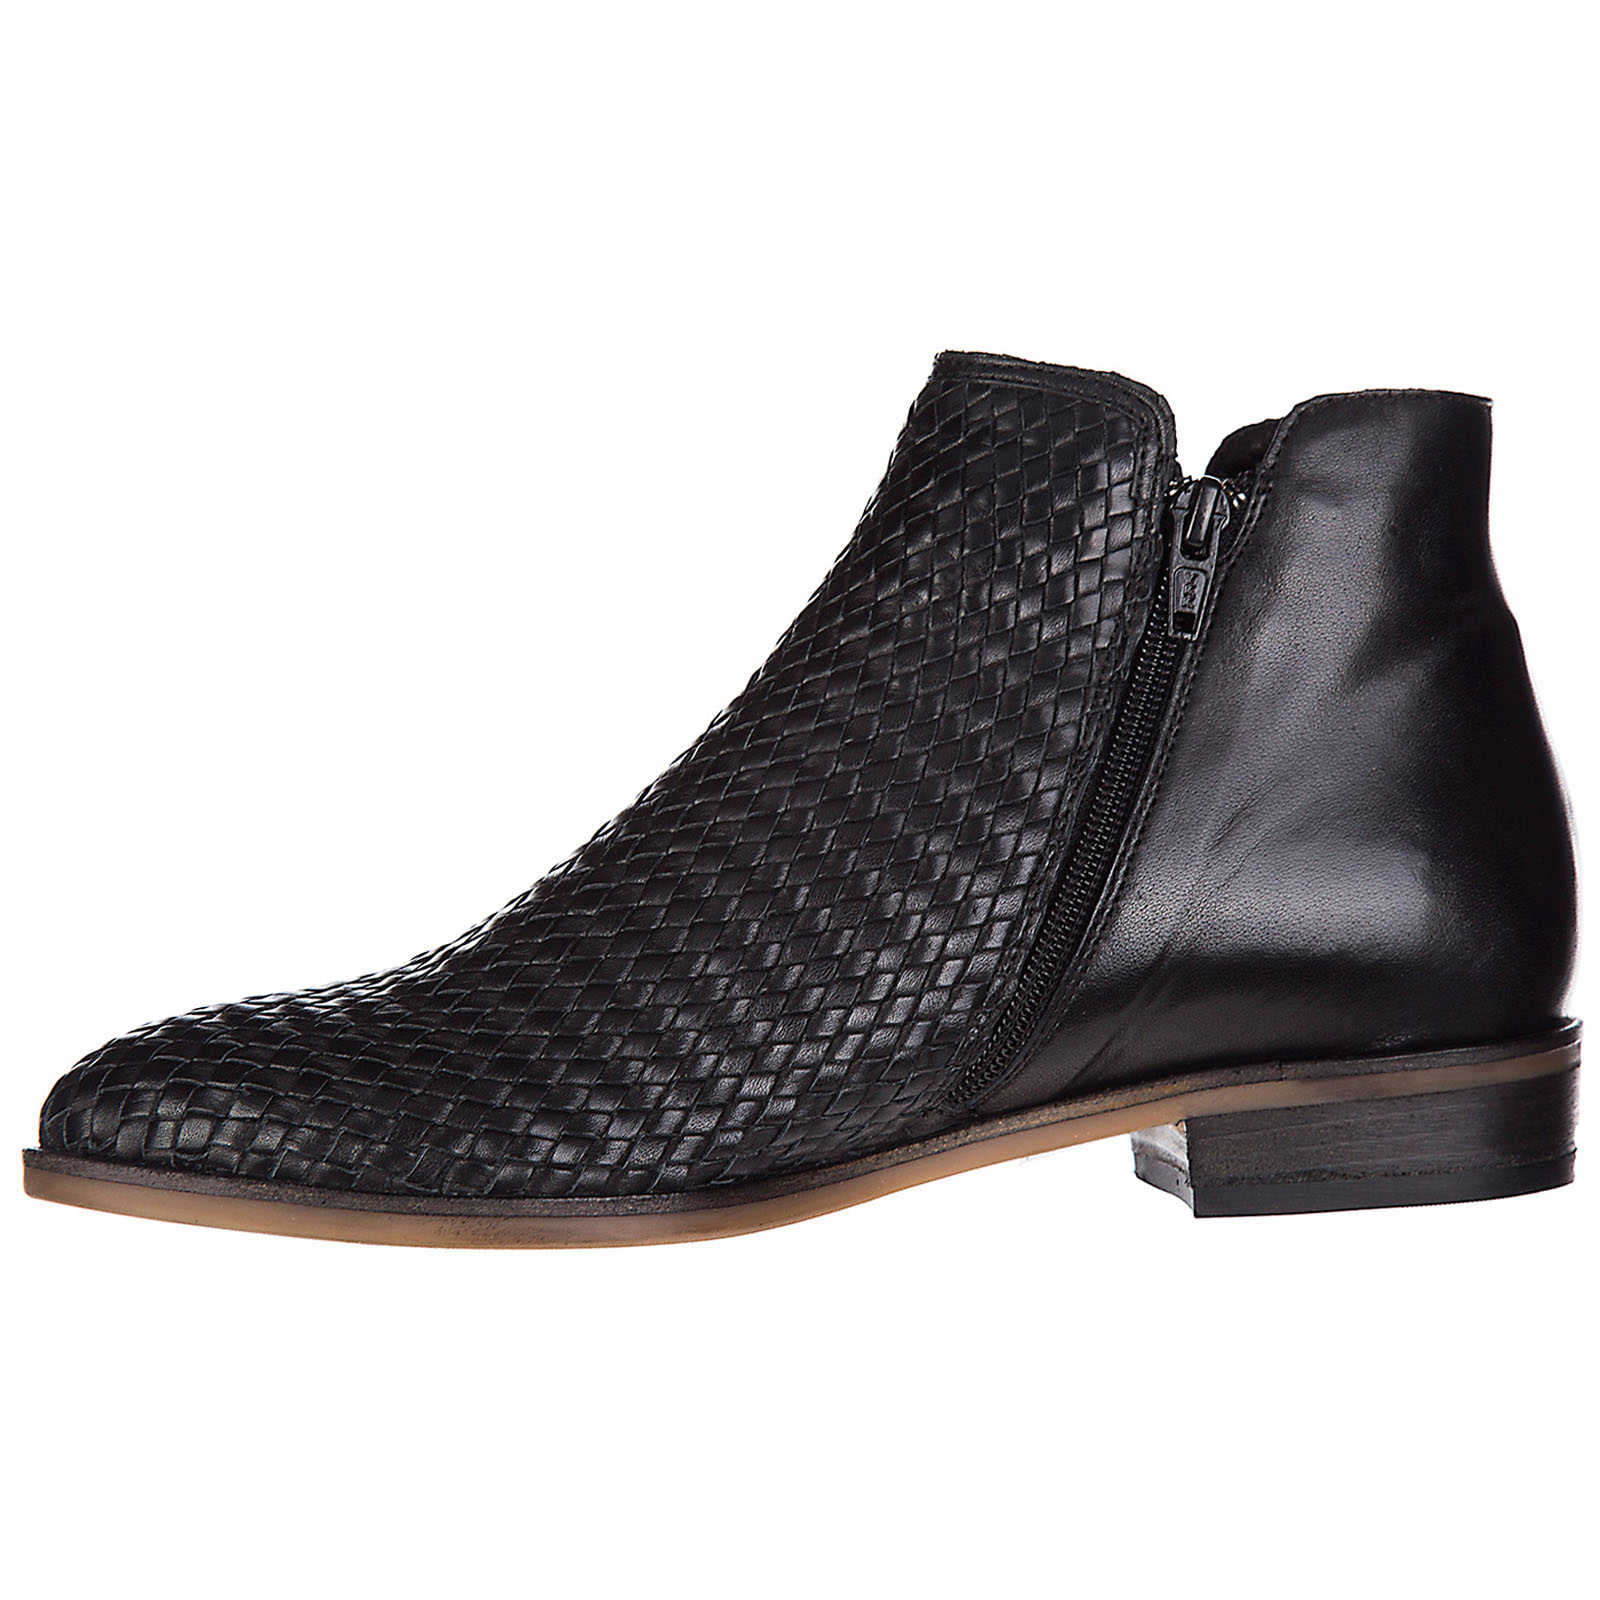 Women's leather ankle boots booties kons